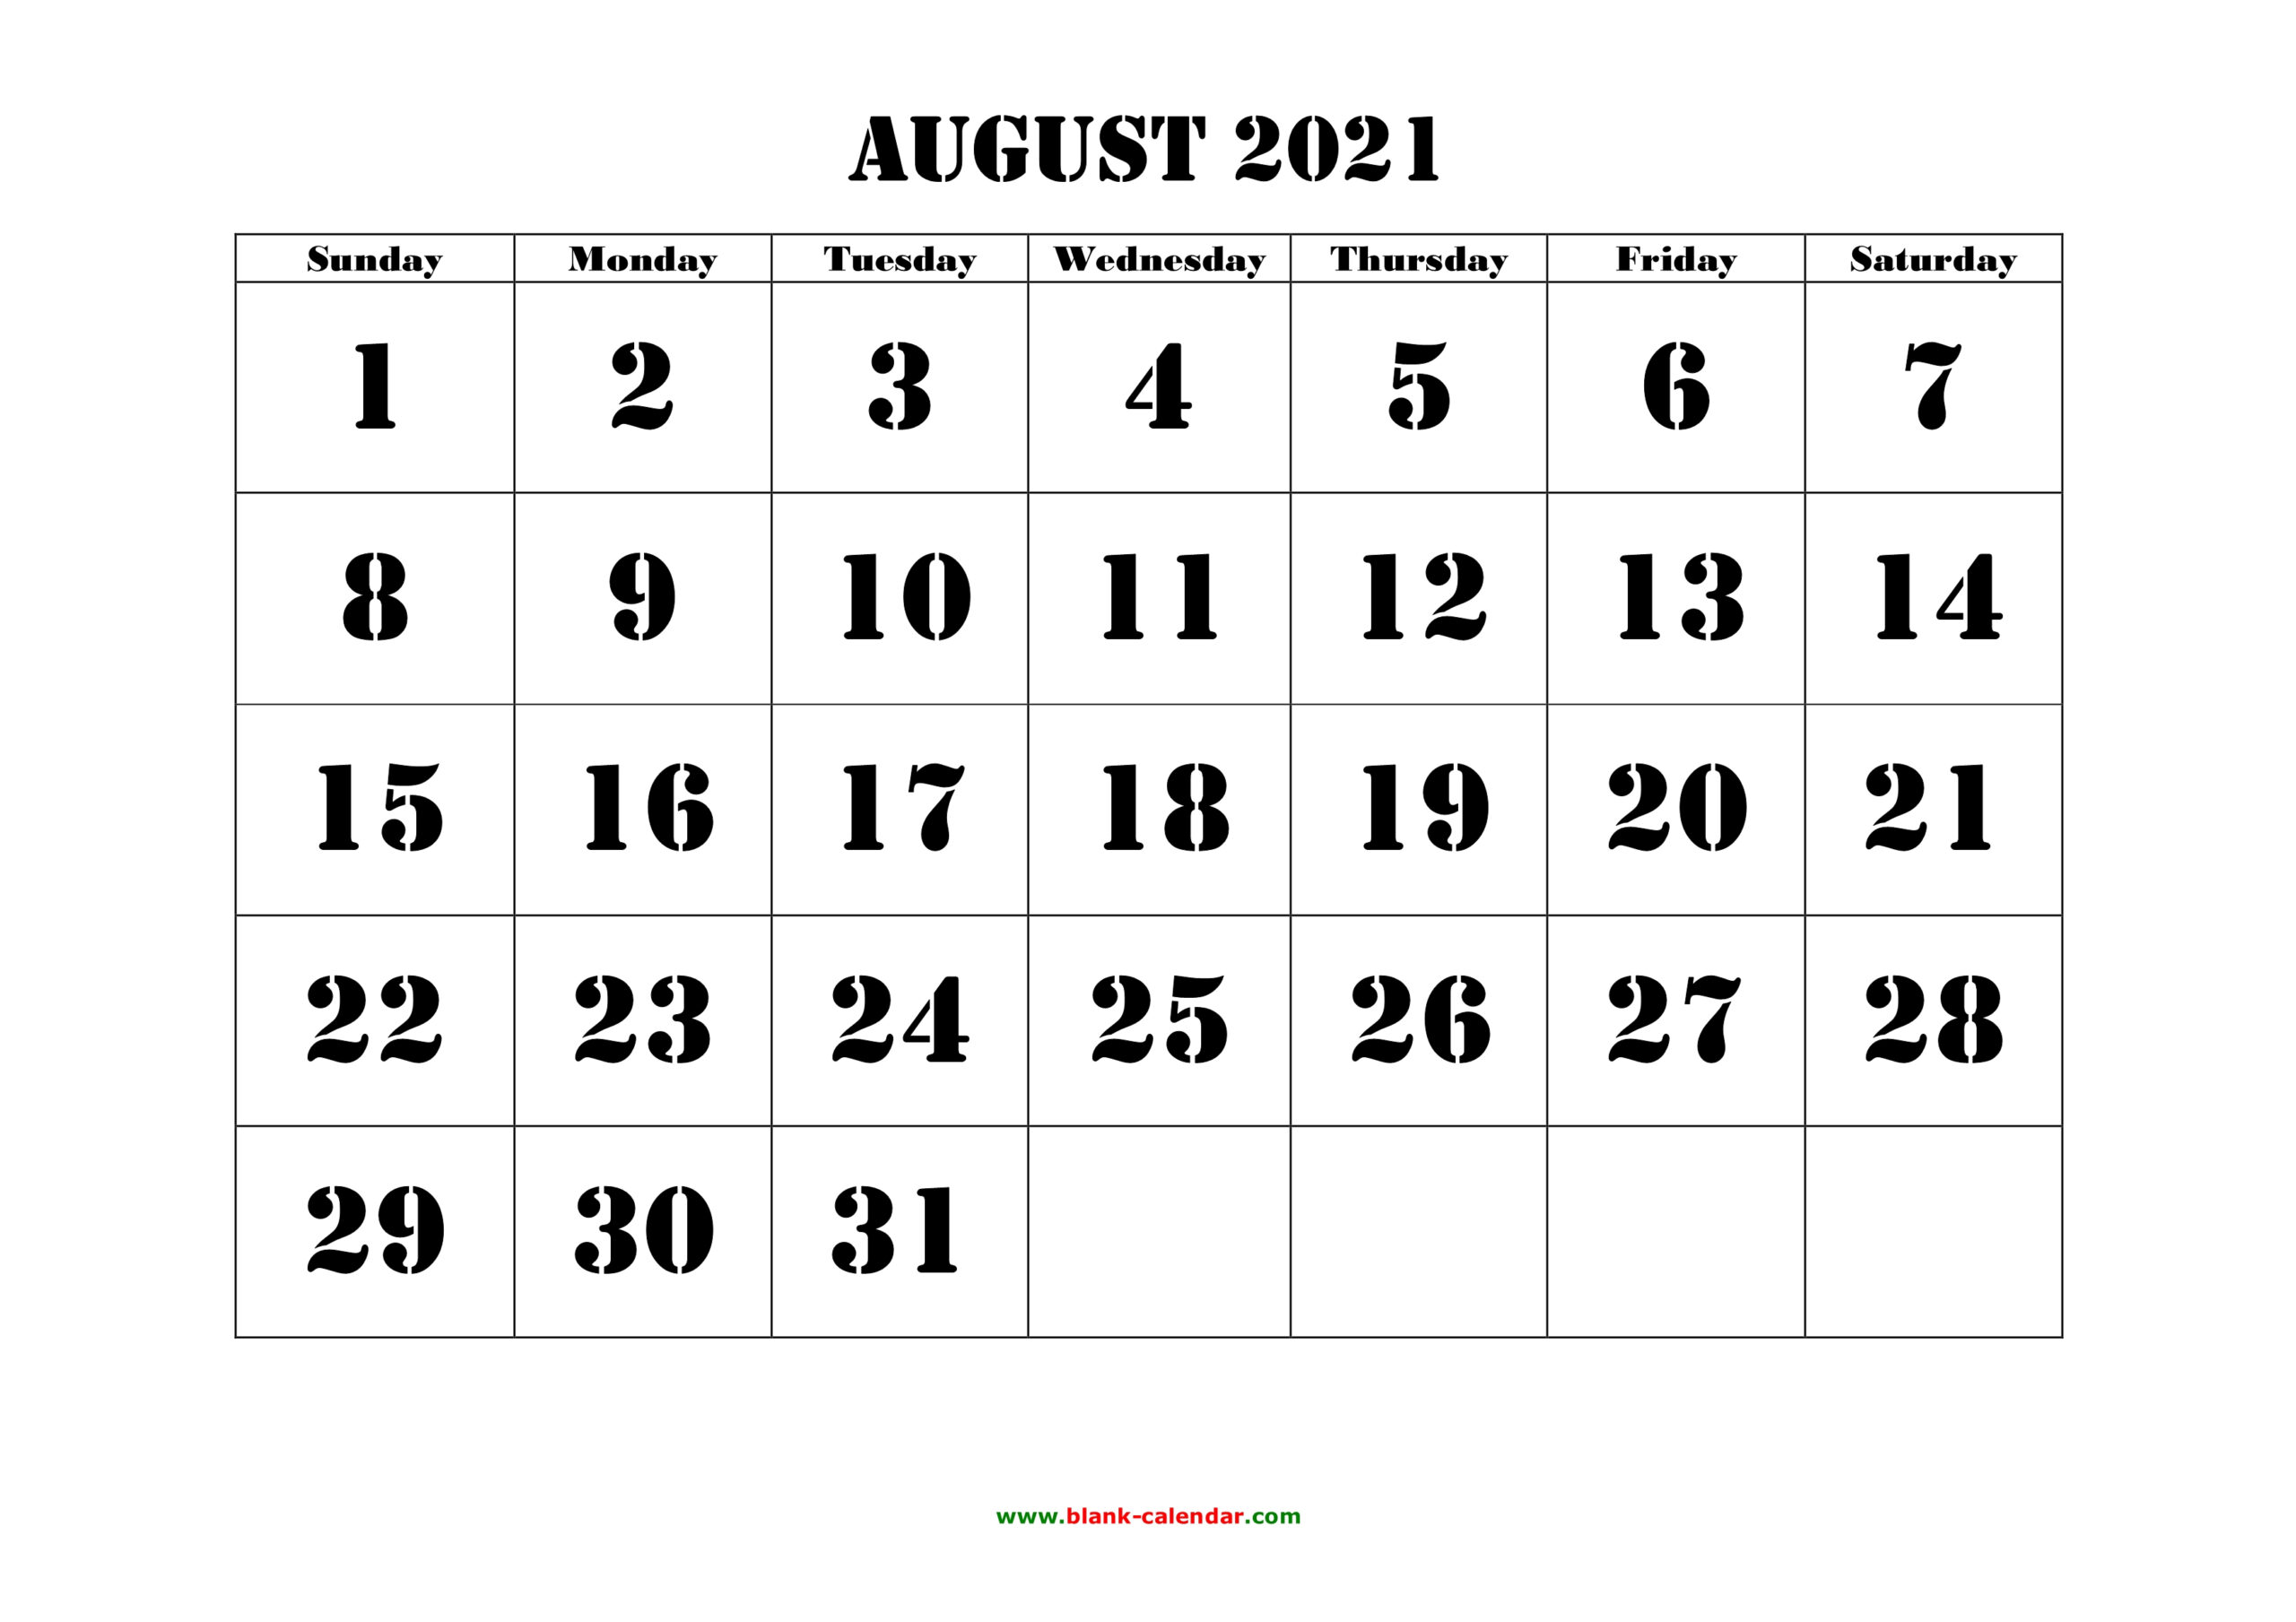 Free Download Printable August 2021 Calendar, Large Font